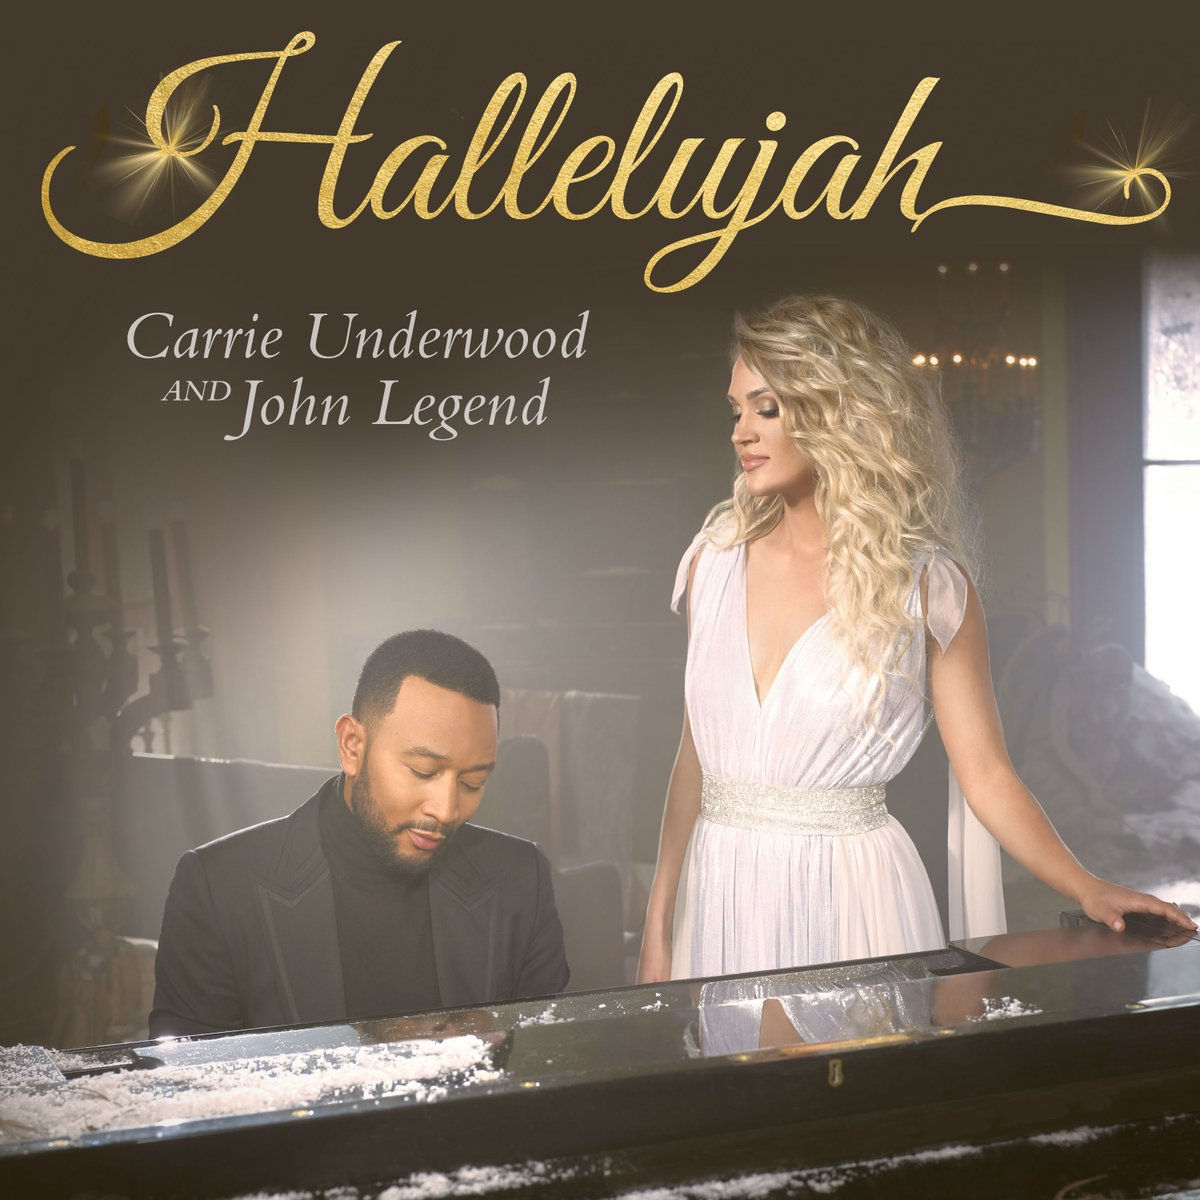 The official music video for #Hallelujah with @johnlegend is now available on Carrie's YouTube channel! #MyGift 🎁✨ Check it out:  -TeamCU